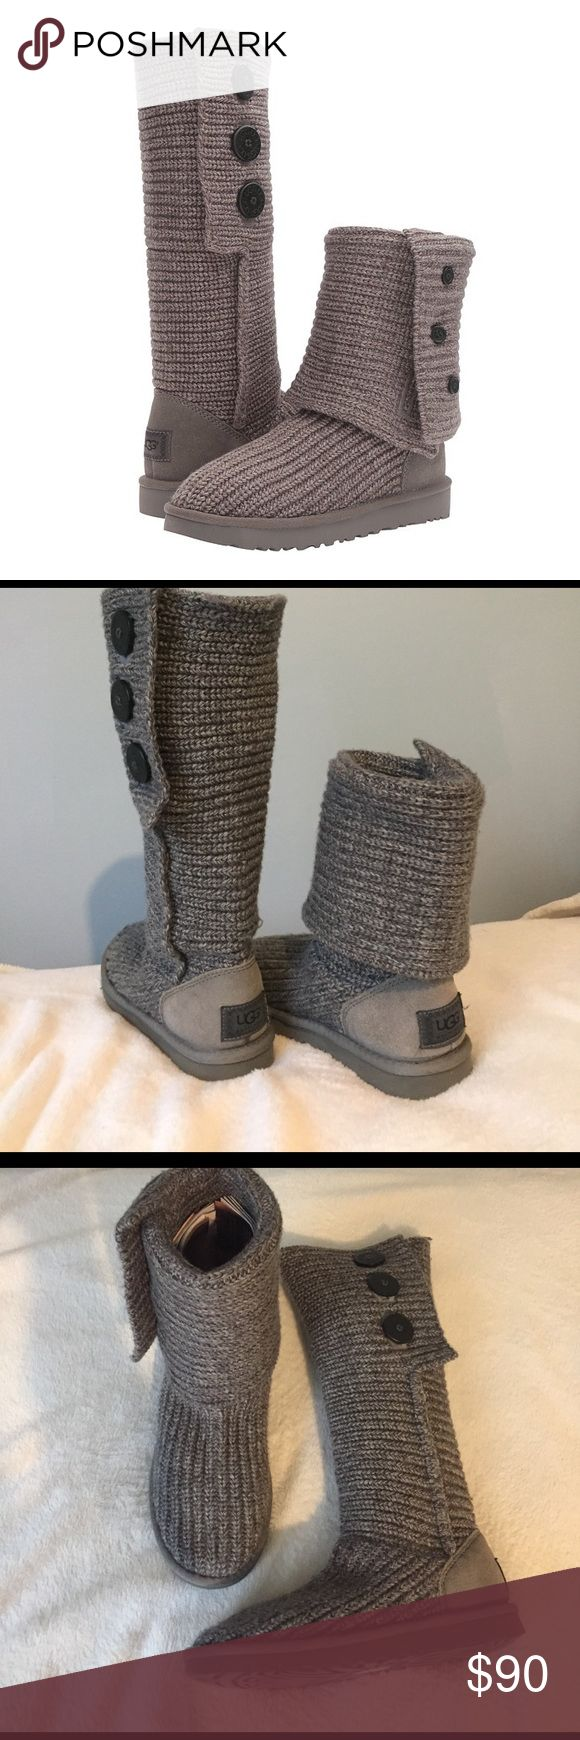 UGG classic Cardy gray fold over boots women's 6 UGG classic Cardy fold over boots! Gray. Women's 6. Barely worn, like new. Send offer through button will negotiate! No low balls please :) UGG Shoes Winter & Rain Boots